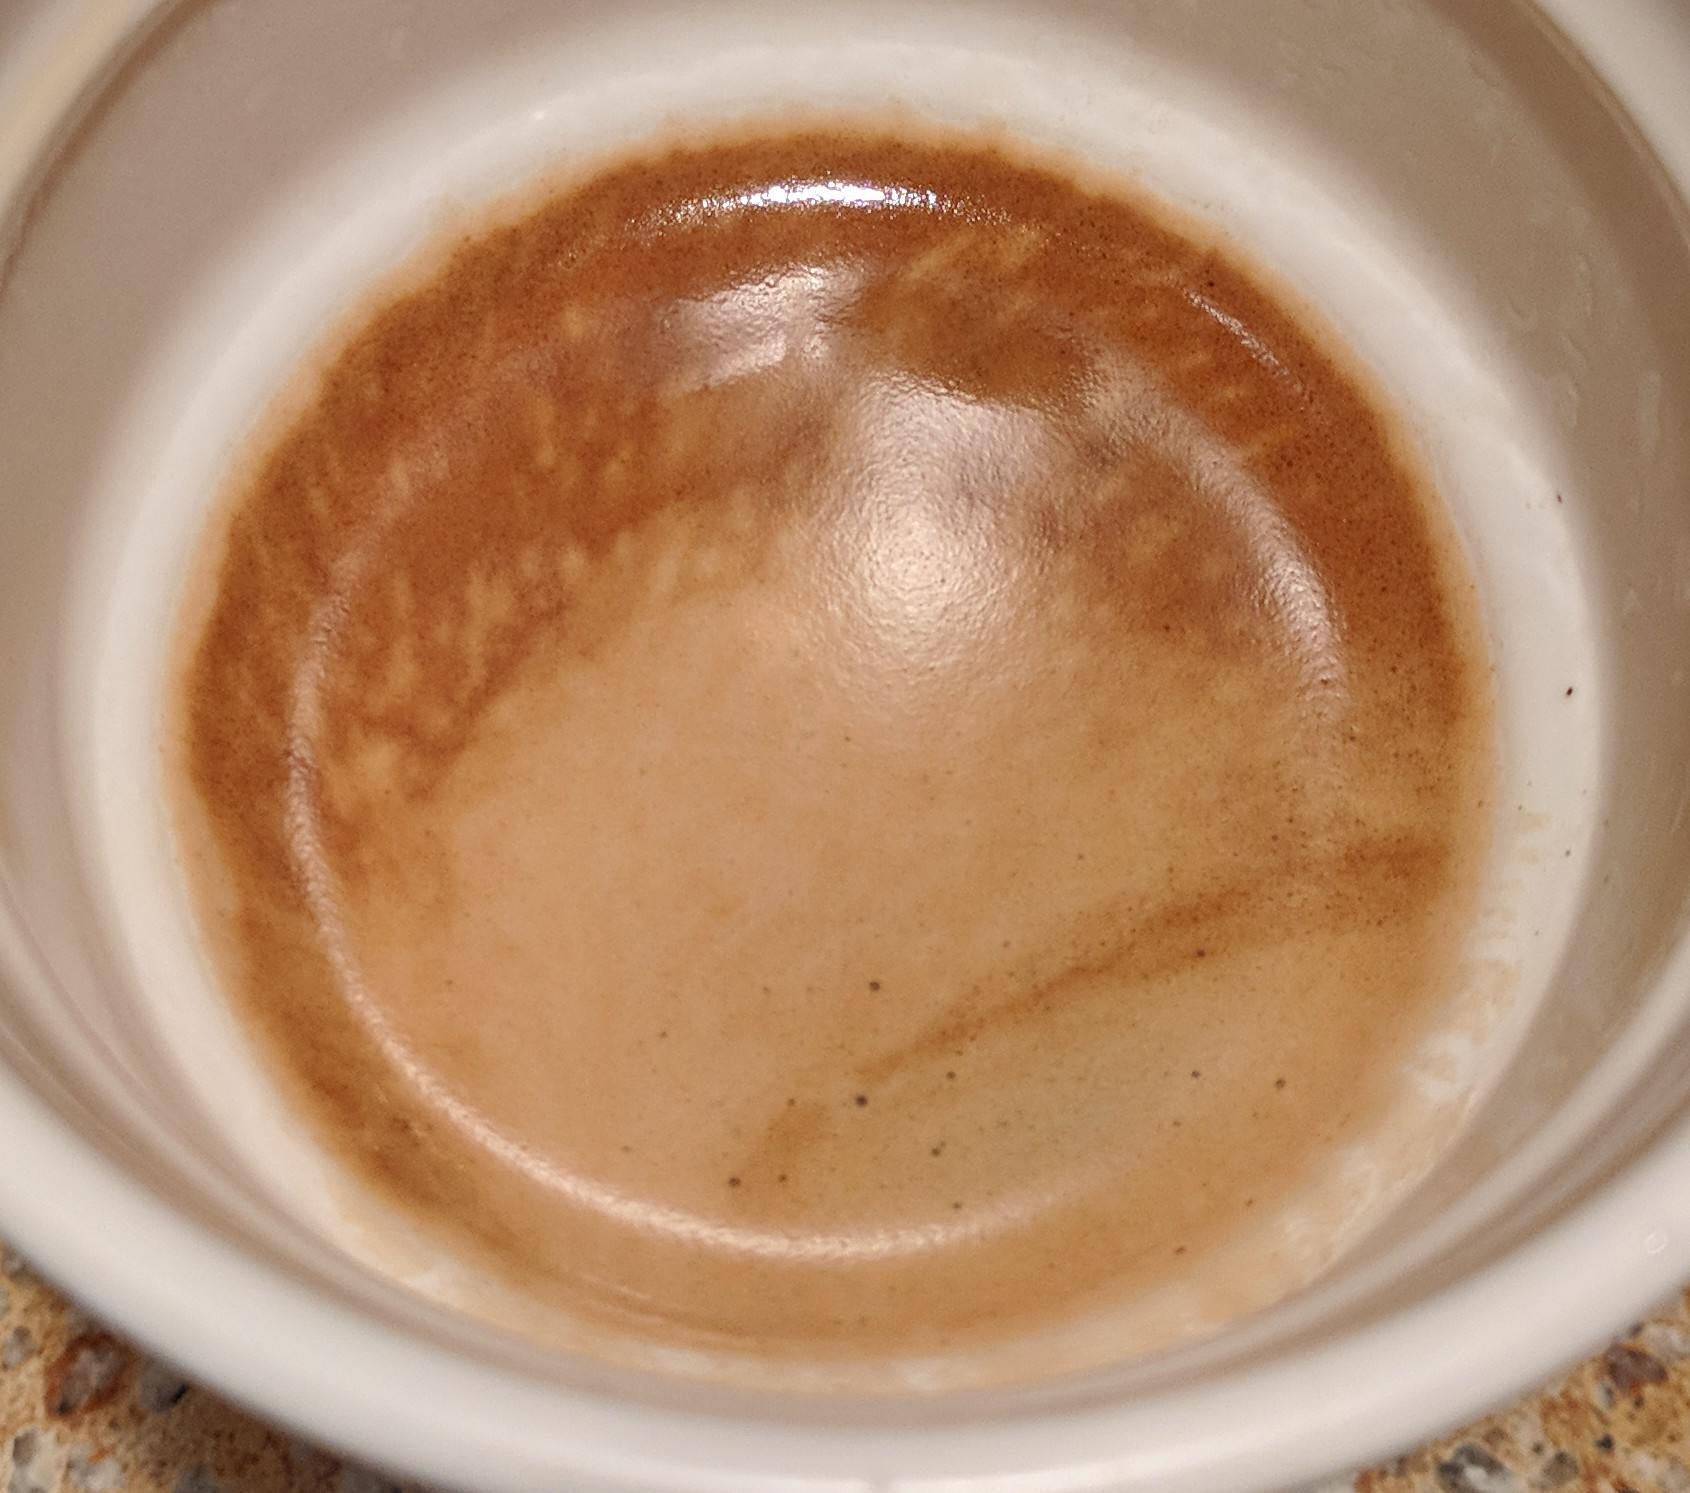 When your shots look like Jupiter in a cup you know you're doing it right